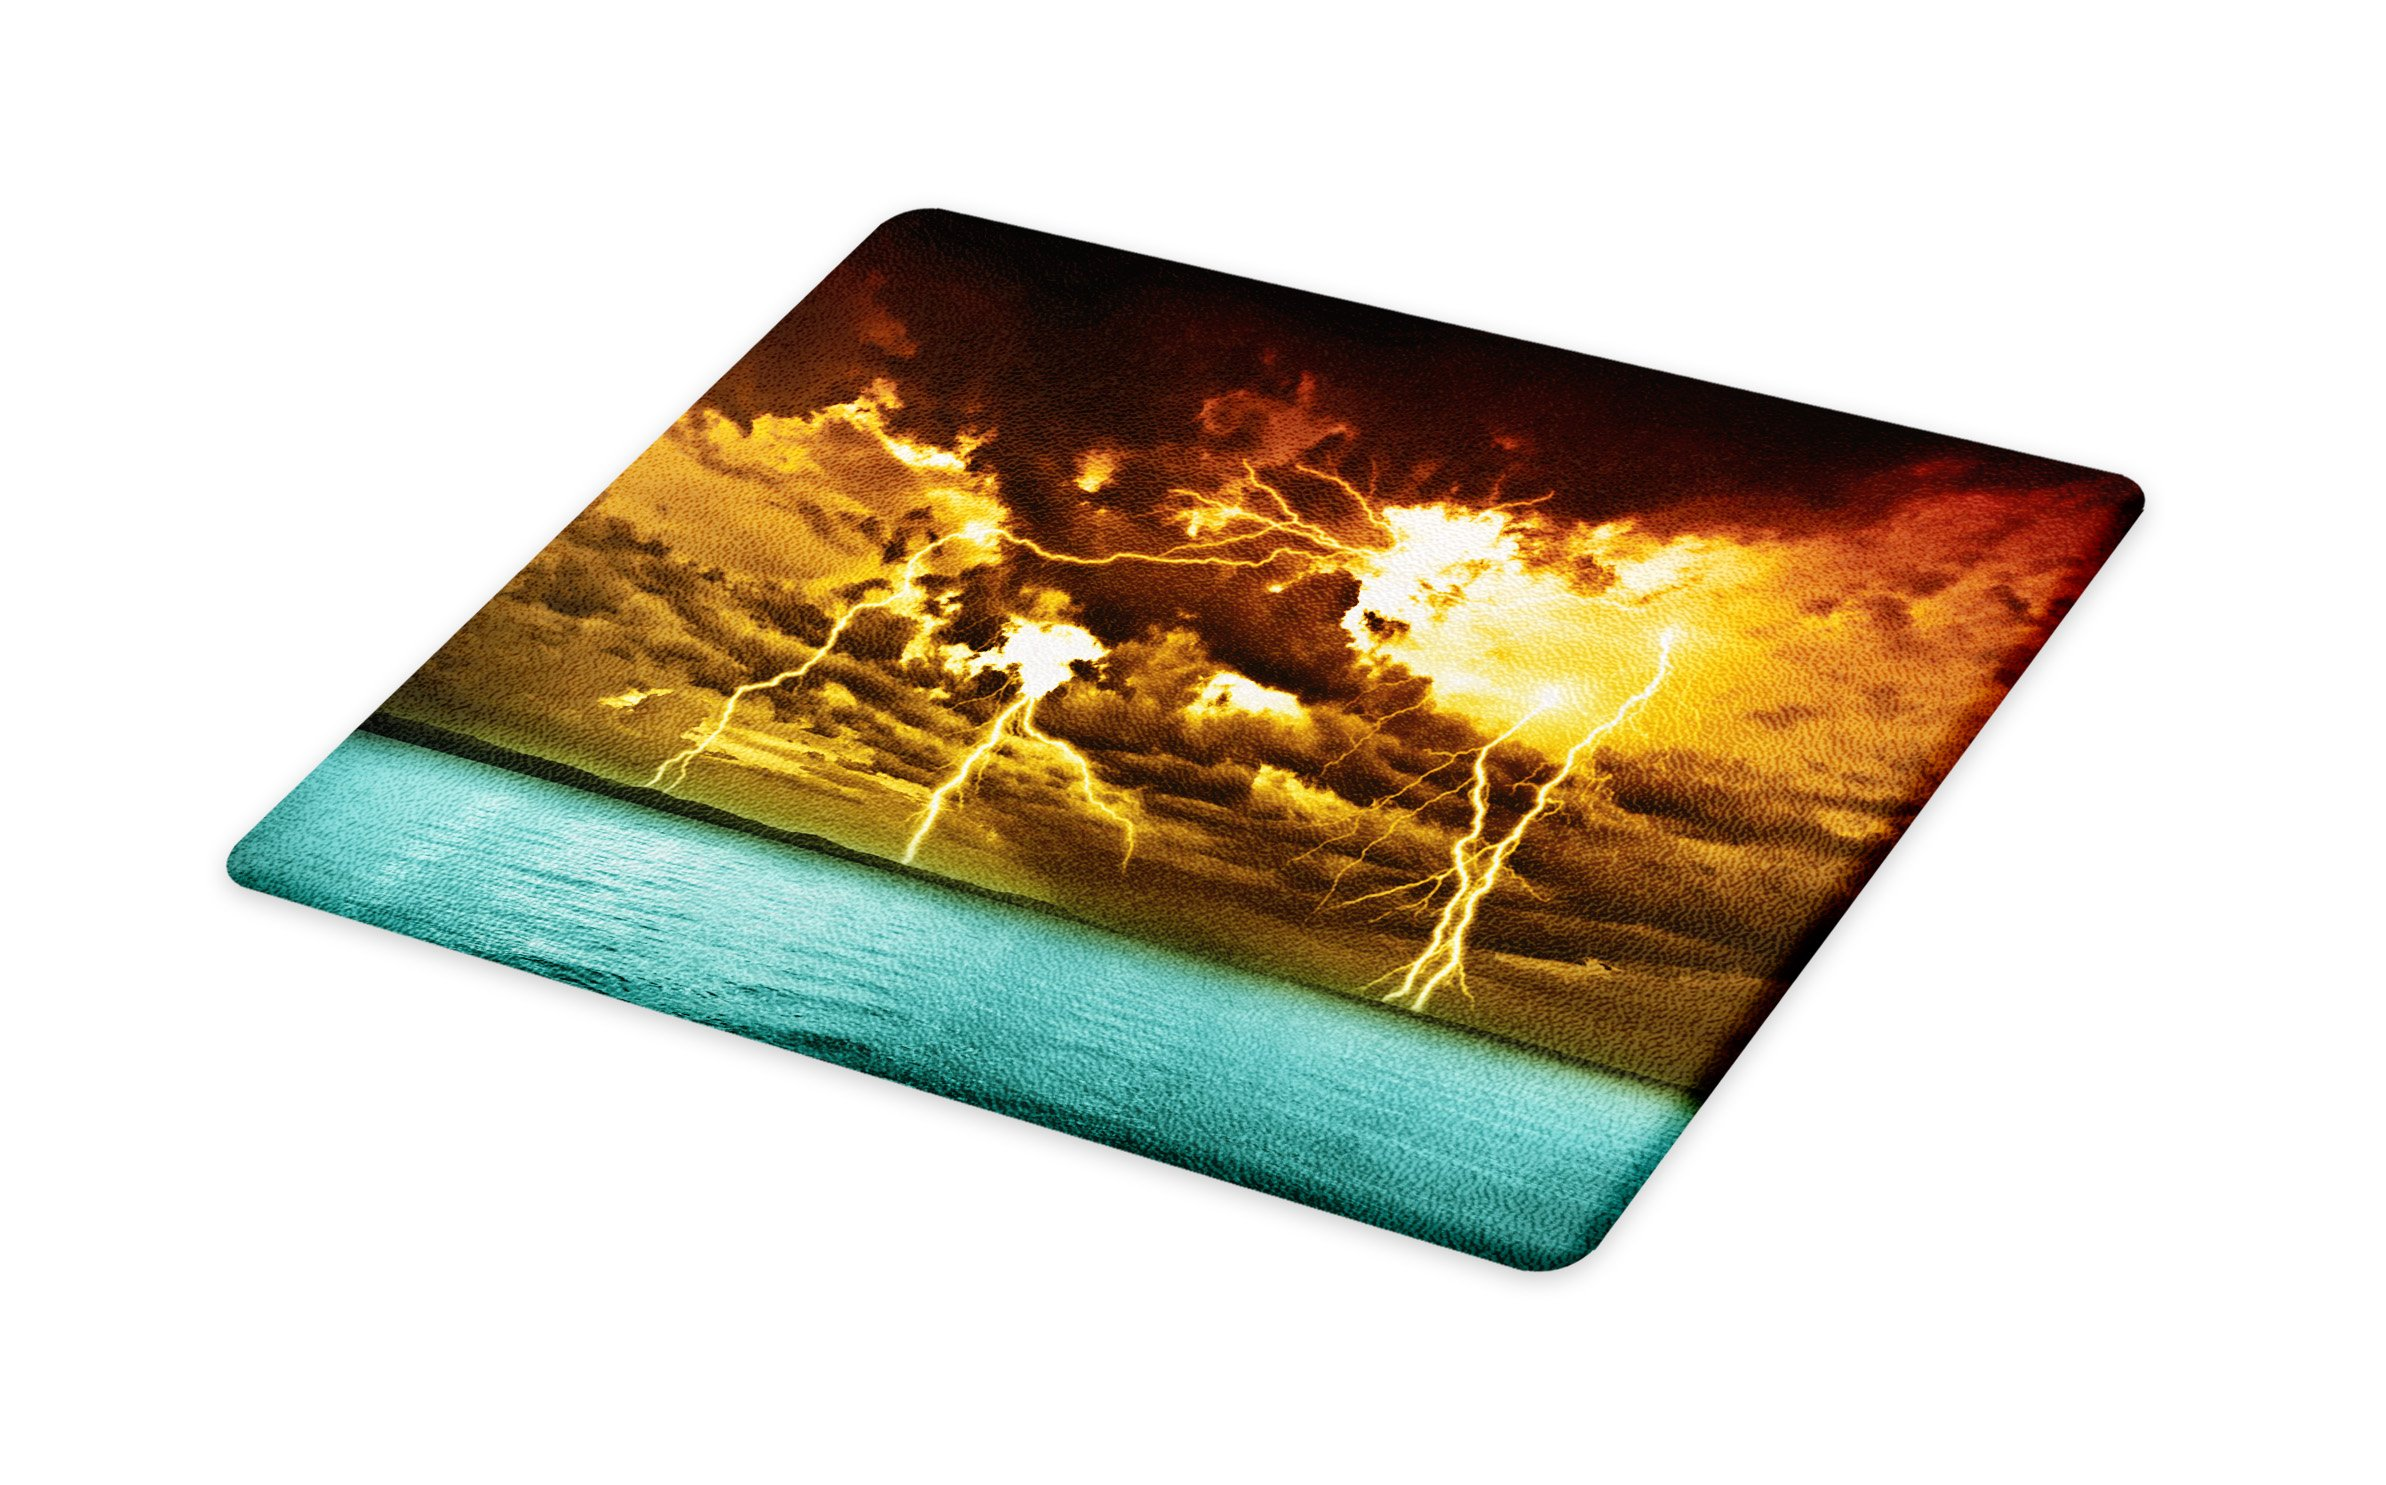 Lunarable Nature Cutting Board, Flash Storm Over The Lake with Large Rain Clouds Miracle Solar Illumination Photo, Decorative Tempered Glass Cutting and Serving Board, Small Size, Blue Yellow